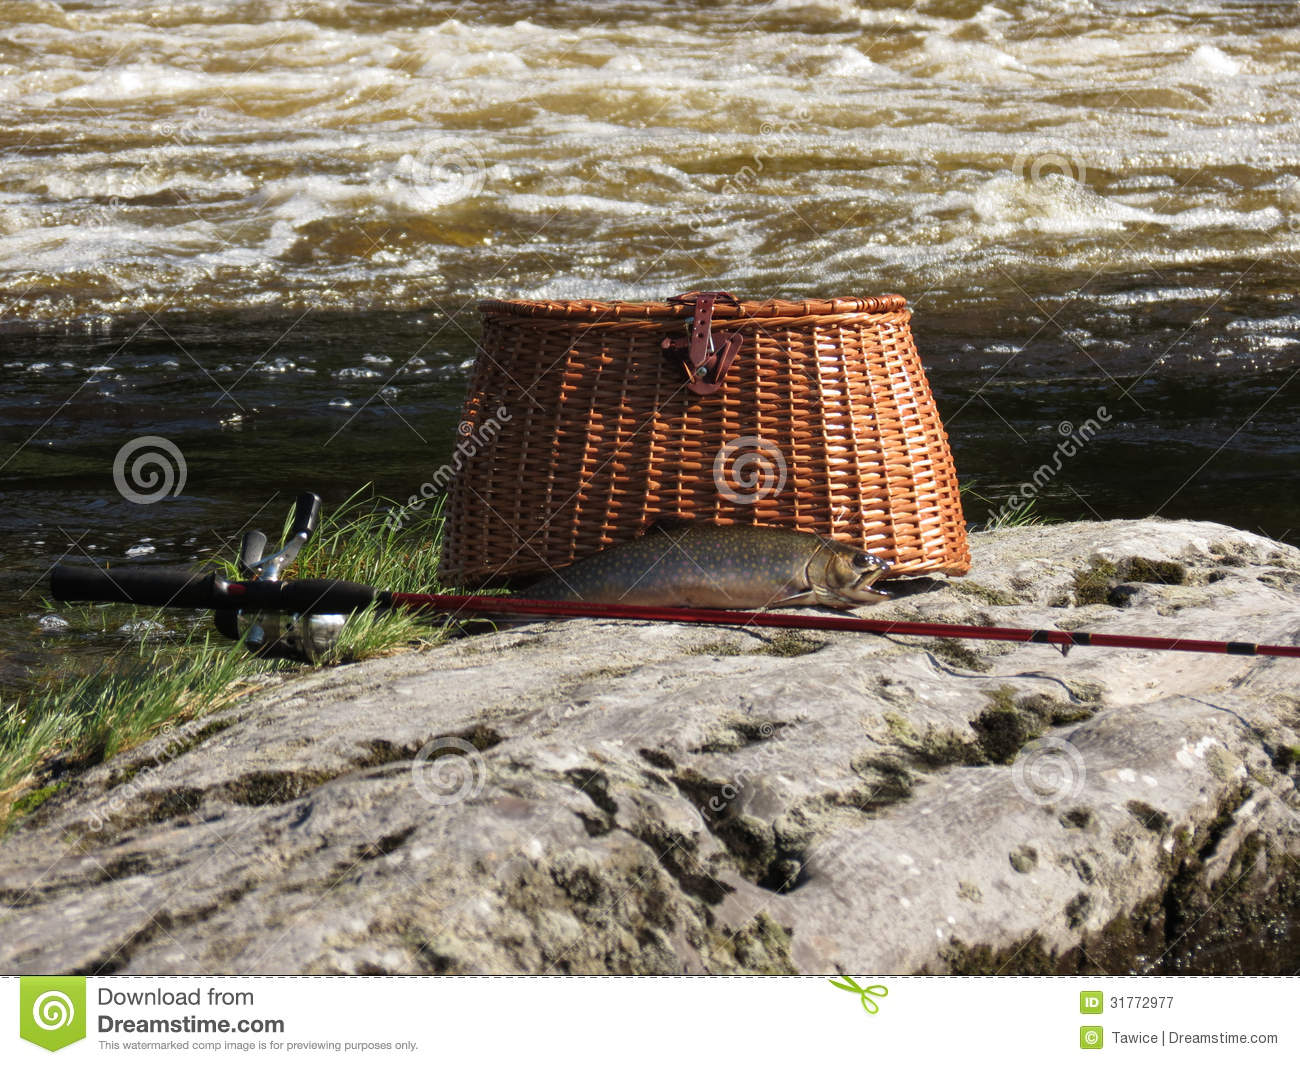 Wicker Fishing Creel With Fishing Pole And Legal Length Brook Trout